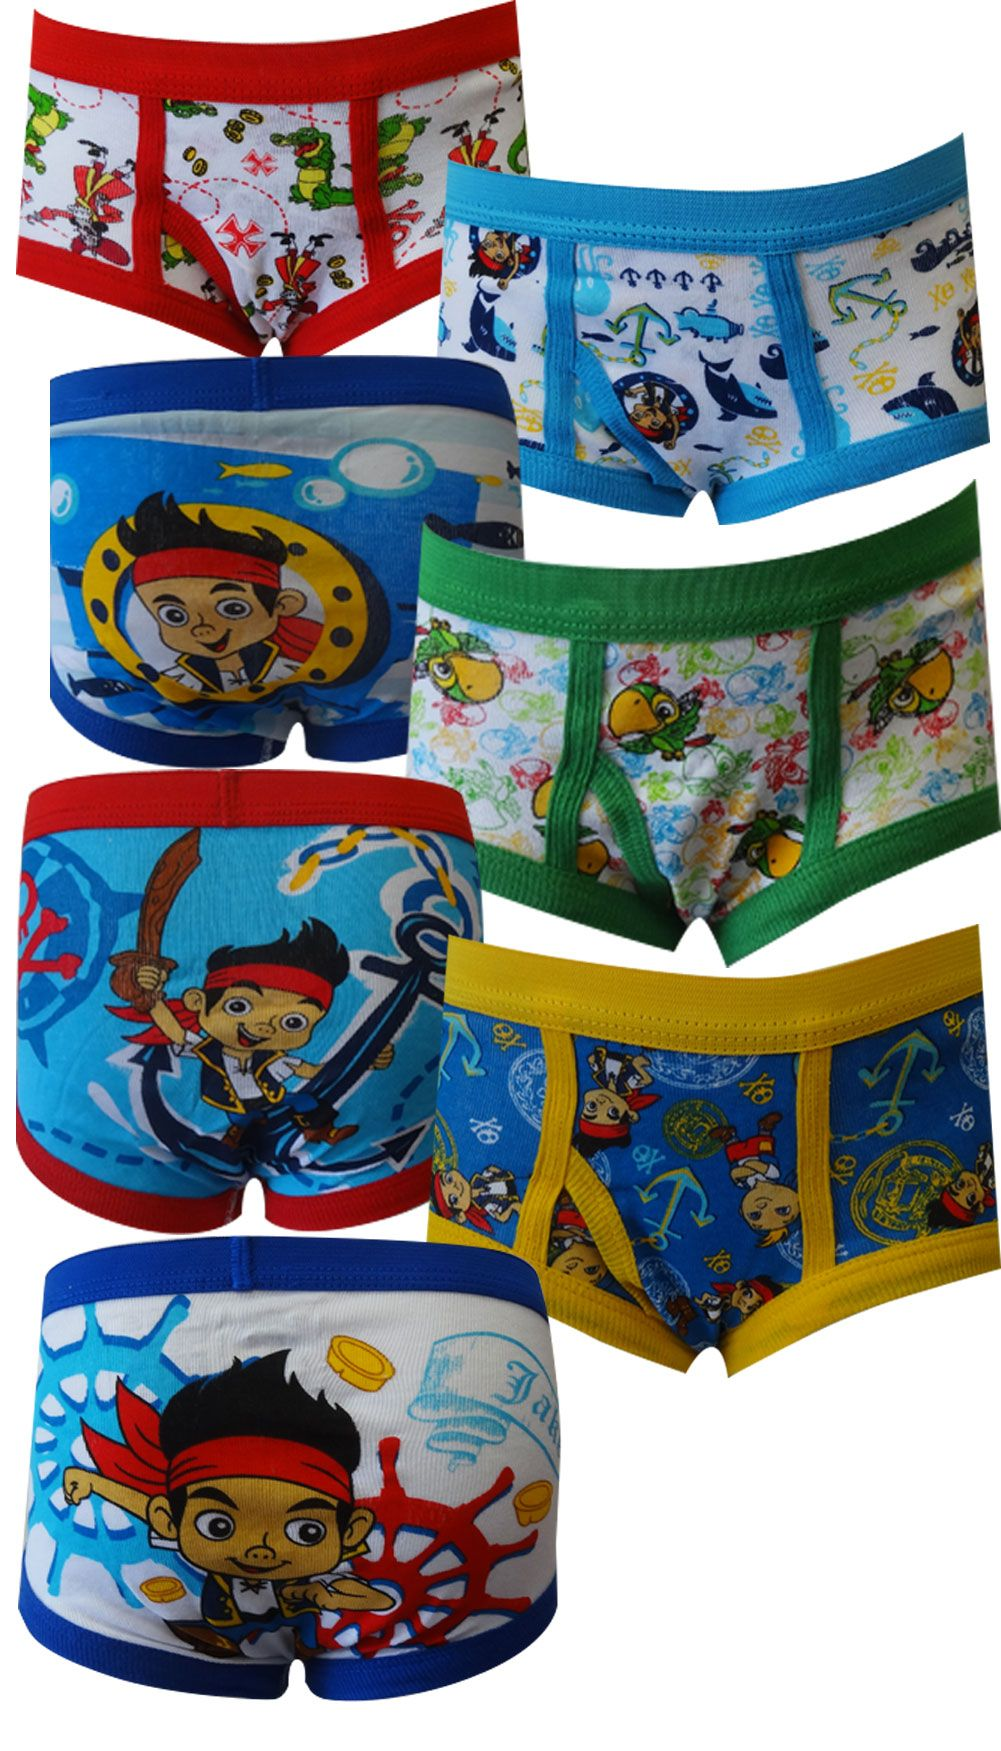 1d1a84abba438 Jake and the Neverland Pirates 7 pack Toddler Boys Briefs Time for a Pirate  Adventure in Crocodile Cove! This 7-pack of boys br.